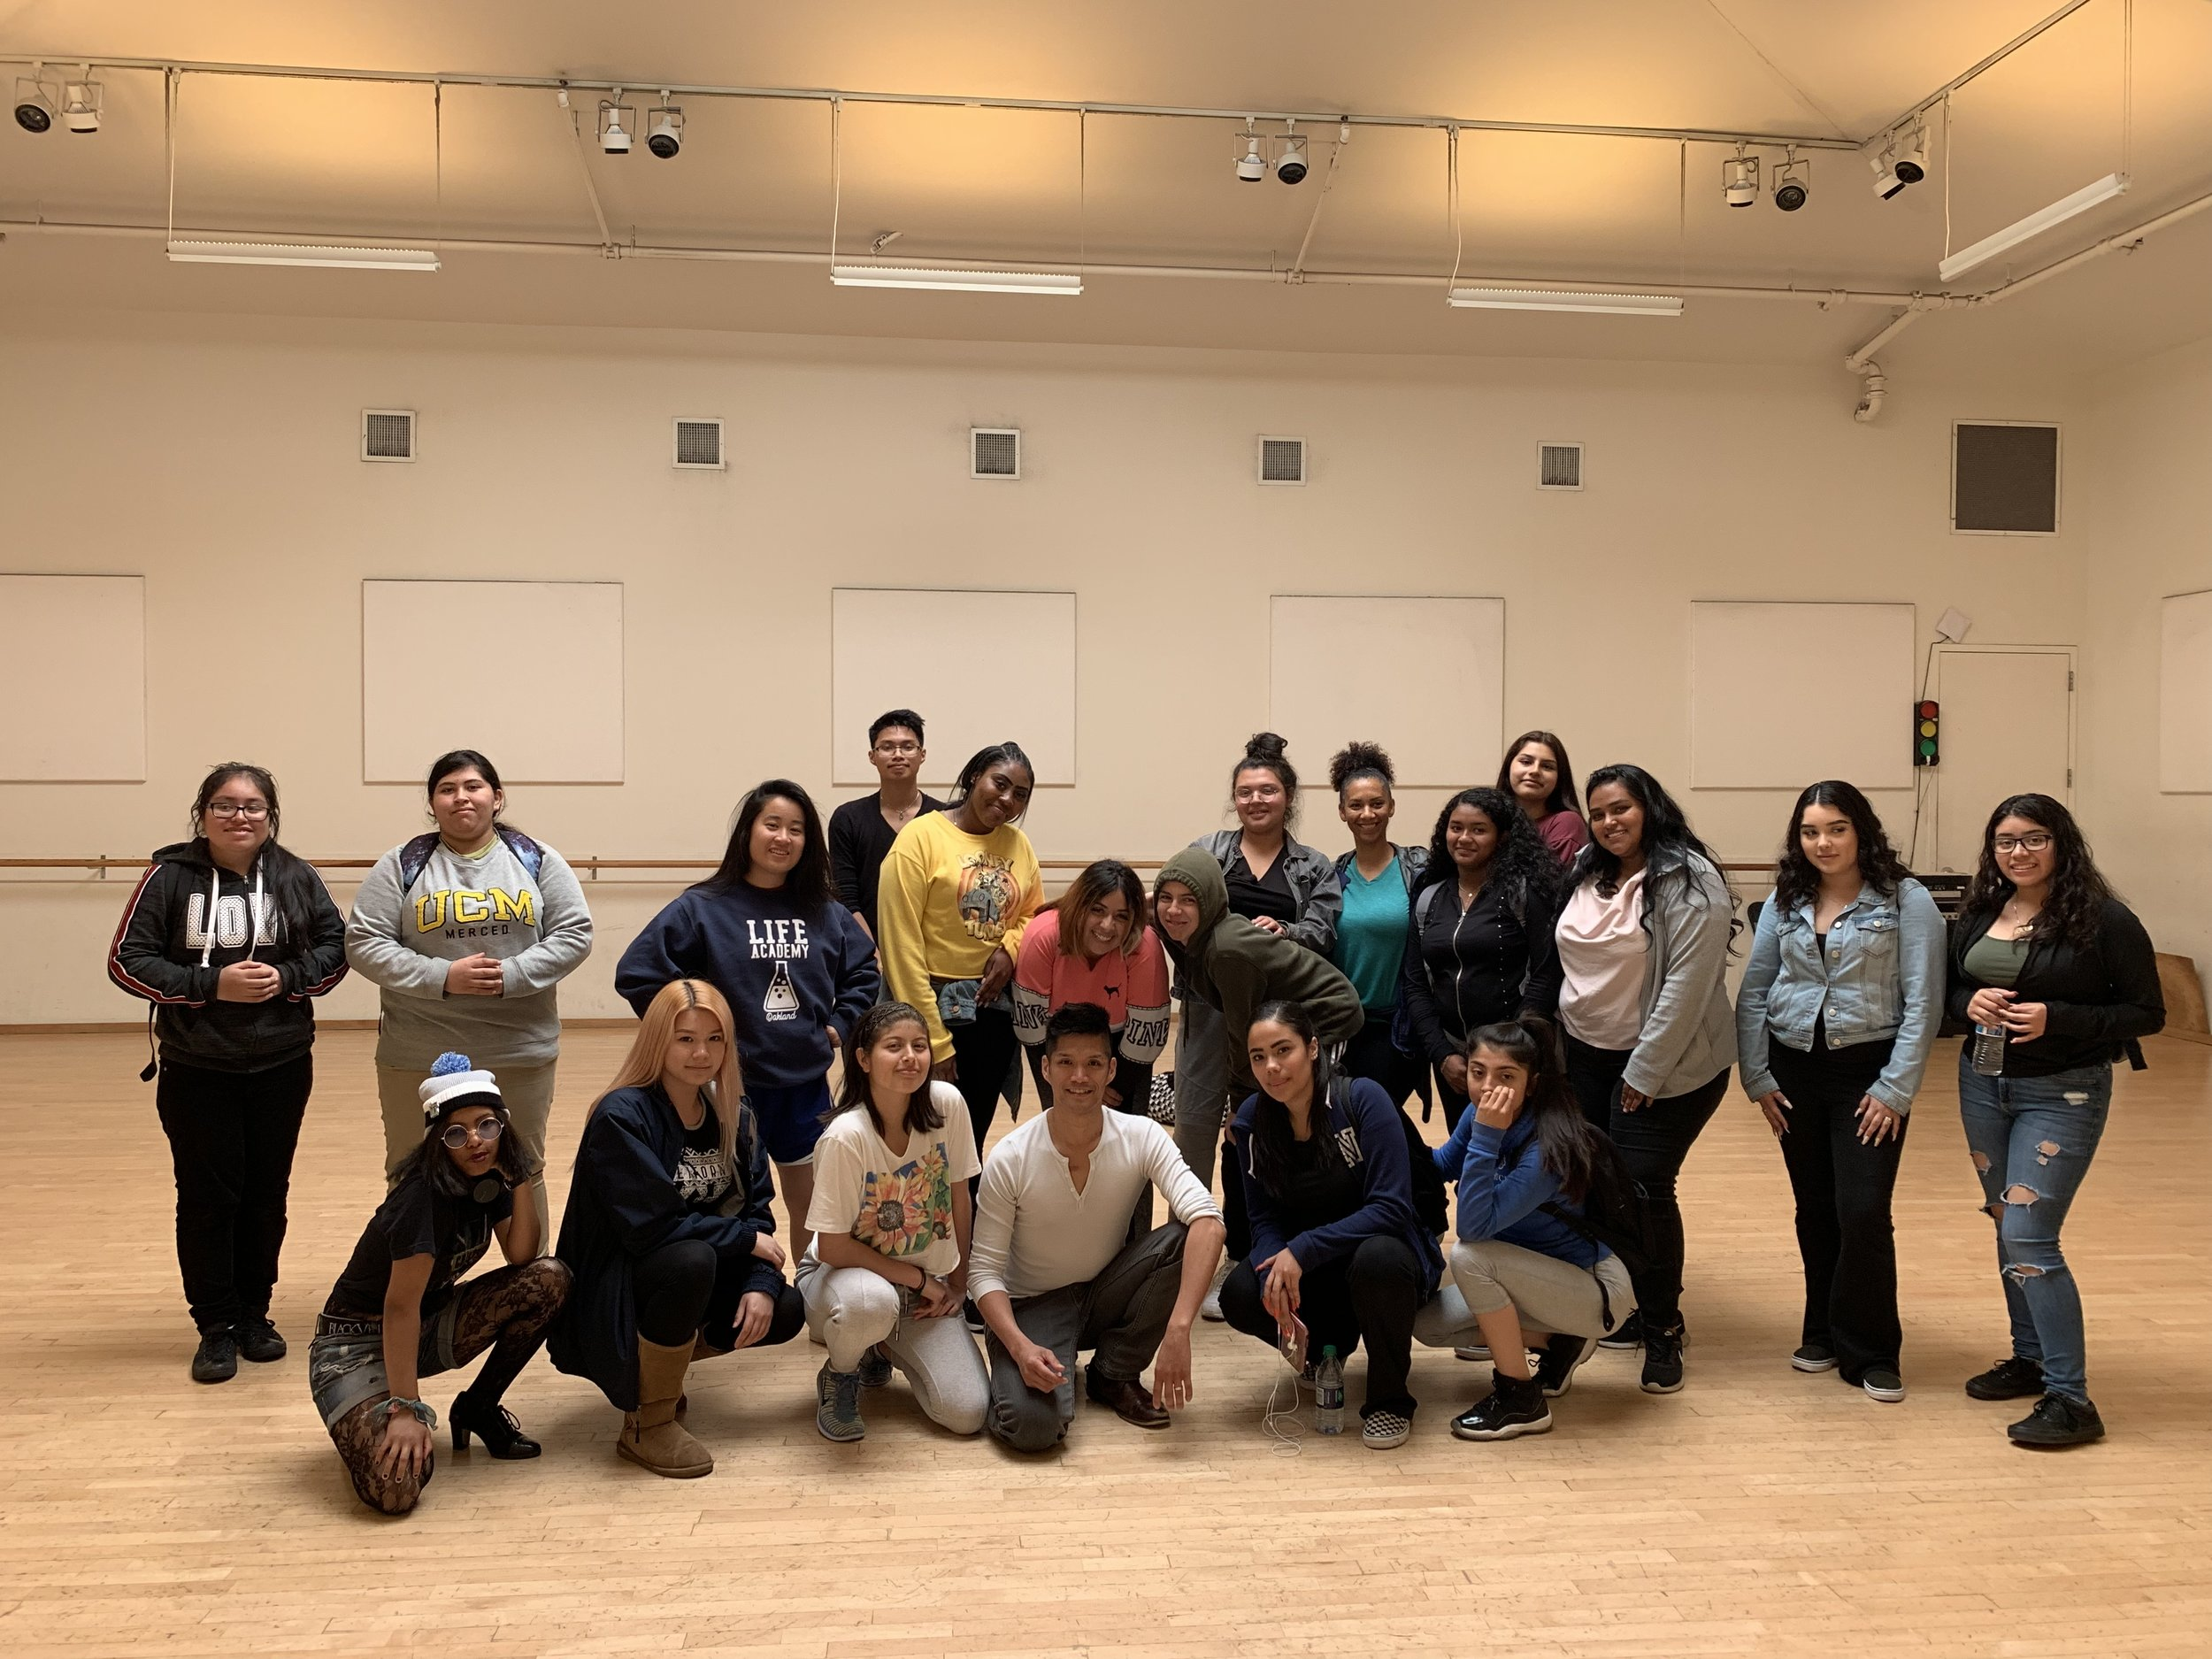 Life Academy students with R&M instructor Dudley Flores